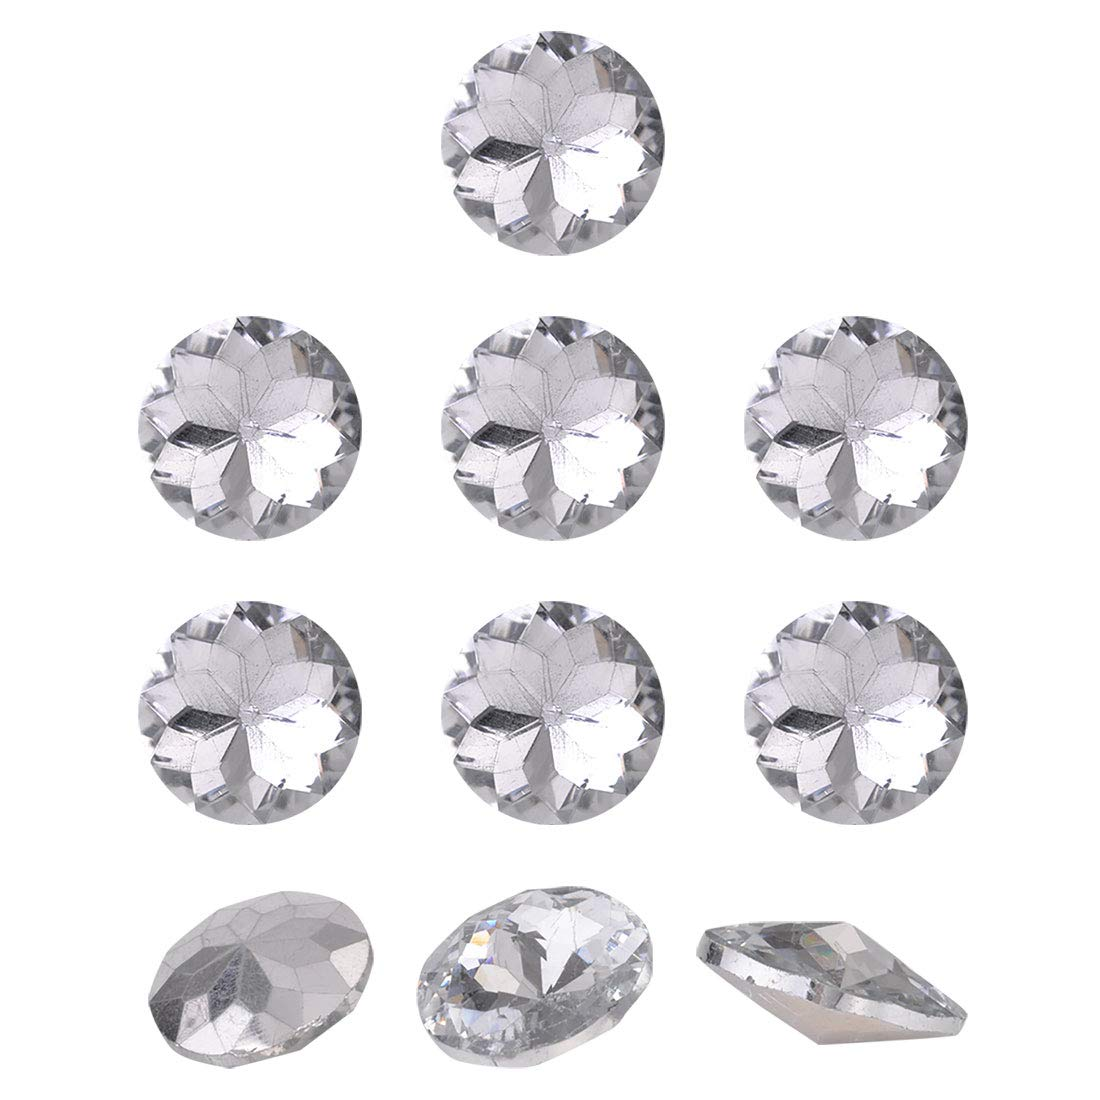 uxcell 10pcs Furniture Tack Nails 22mm Dia Round Head Diamond Shape Glass Thumbtack DIY Sofa Buttons Headboard Crafts Decorate Clear